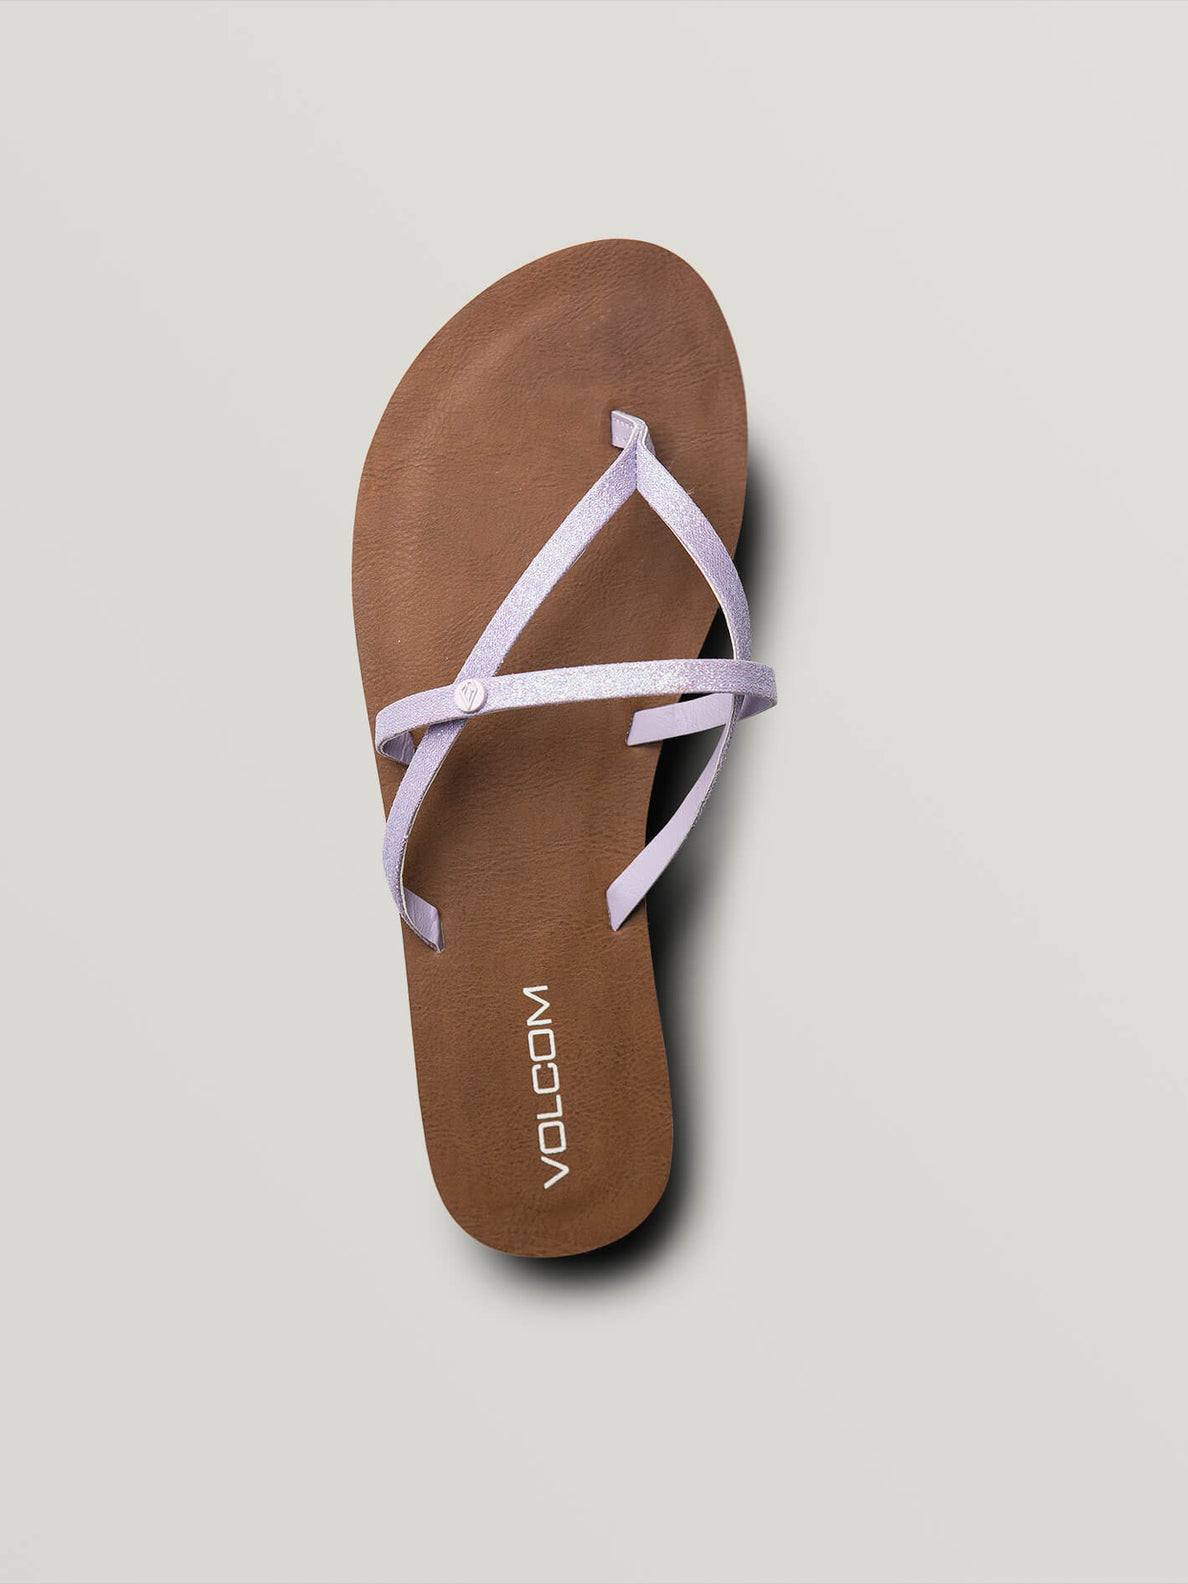 All Night Long Sandals In Light Purple, Alternate View